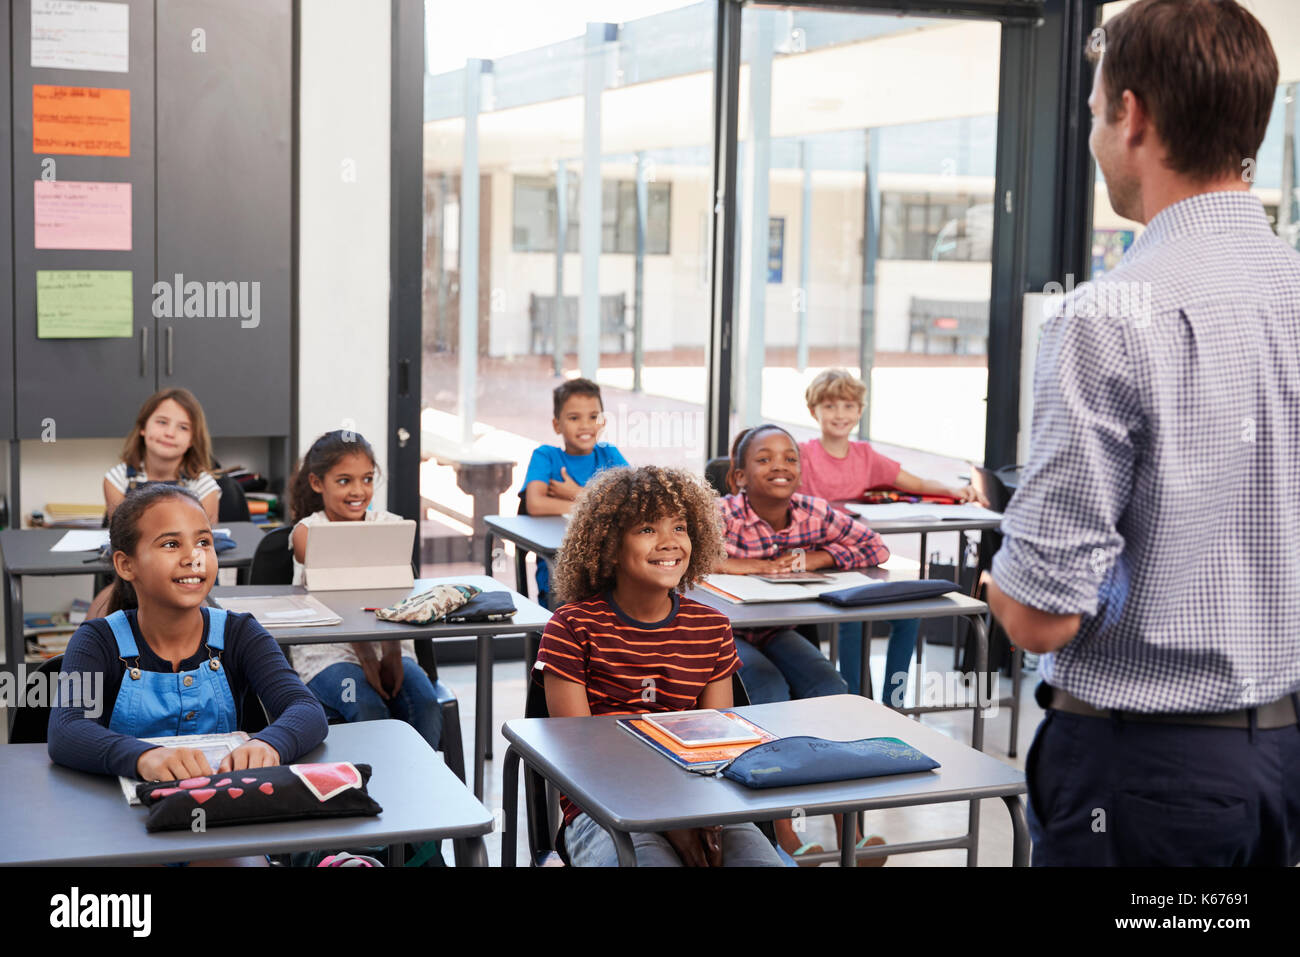 Teacher in front of elementary school class, back view - Stock Image